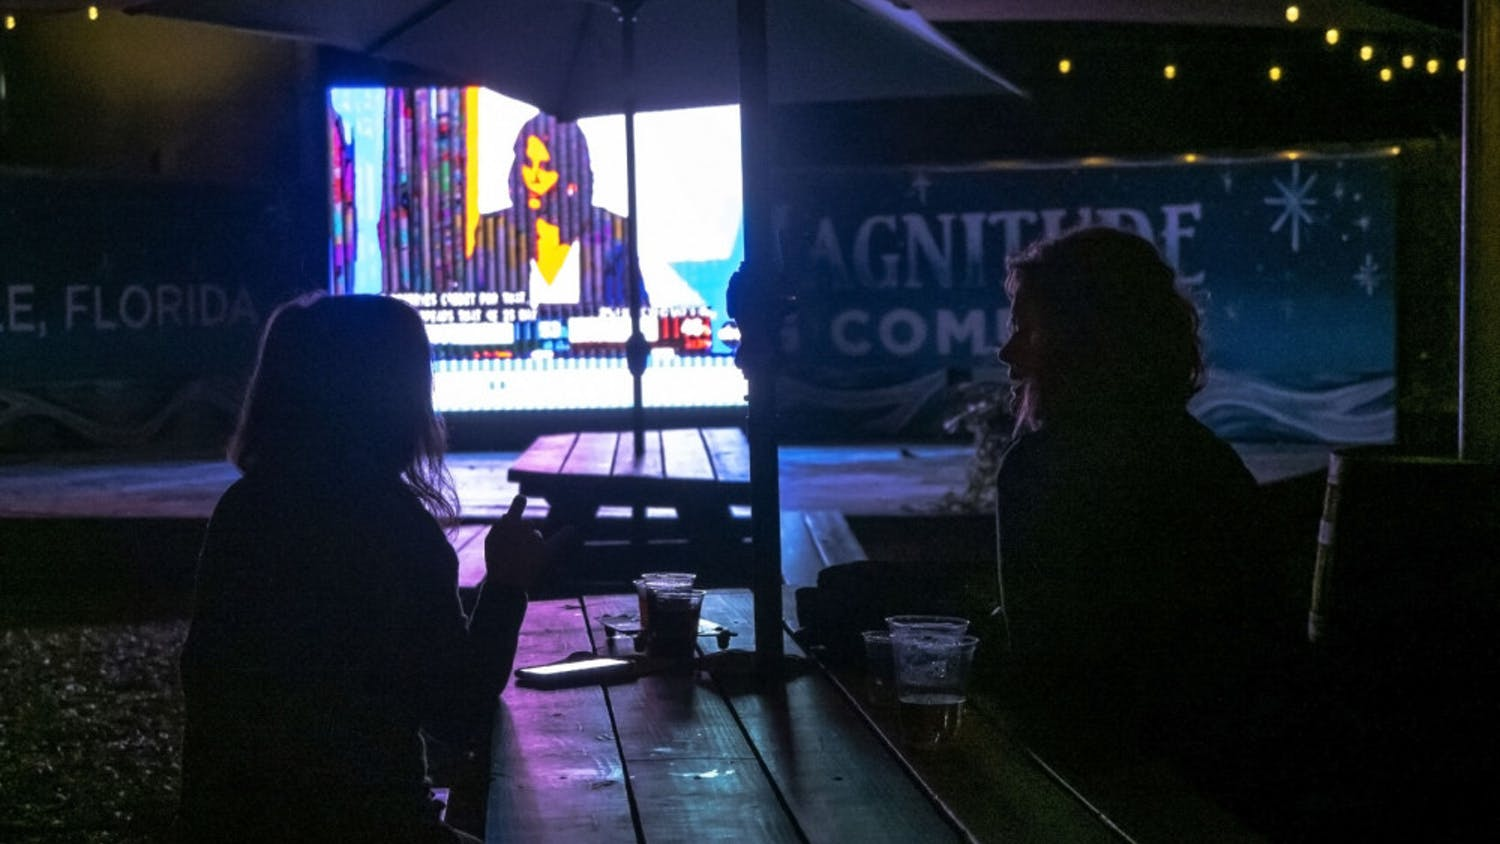 Two women watch the presidential election results at First Magnitude Brewery, located in Gainesville, Fla., on Tuesday, Nov. 3, 2020.